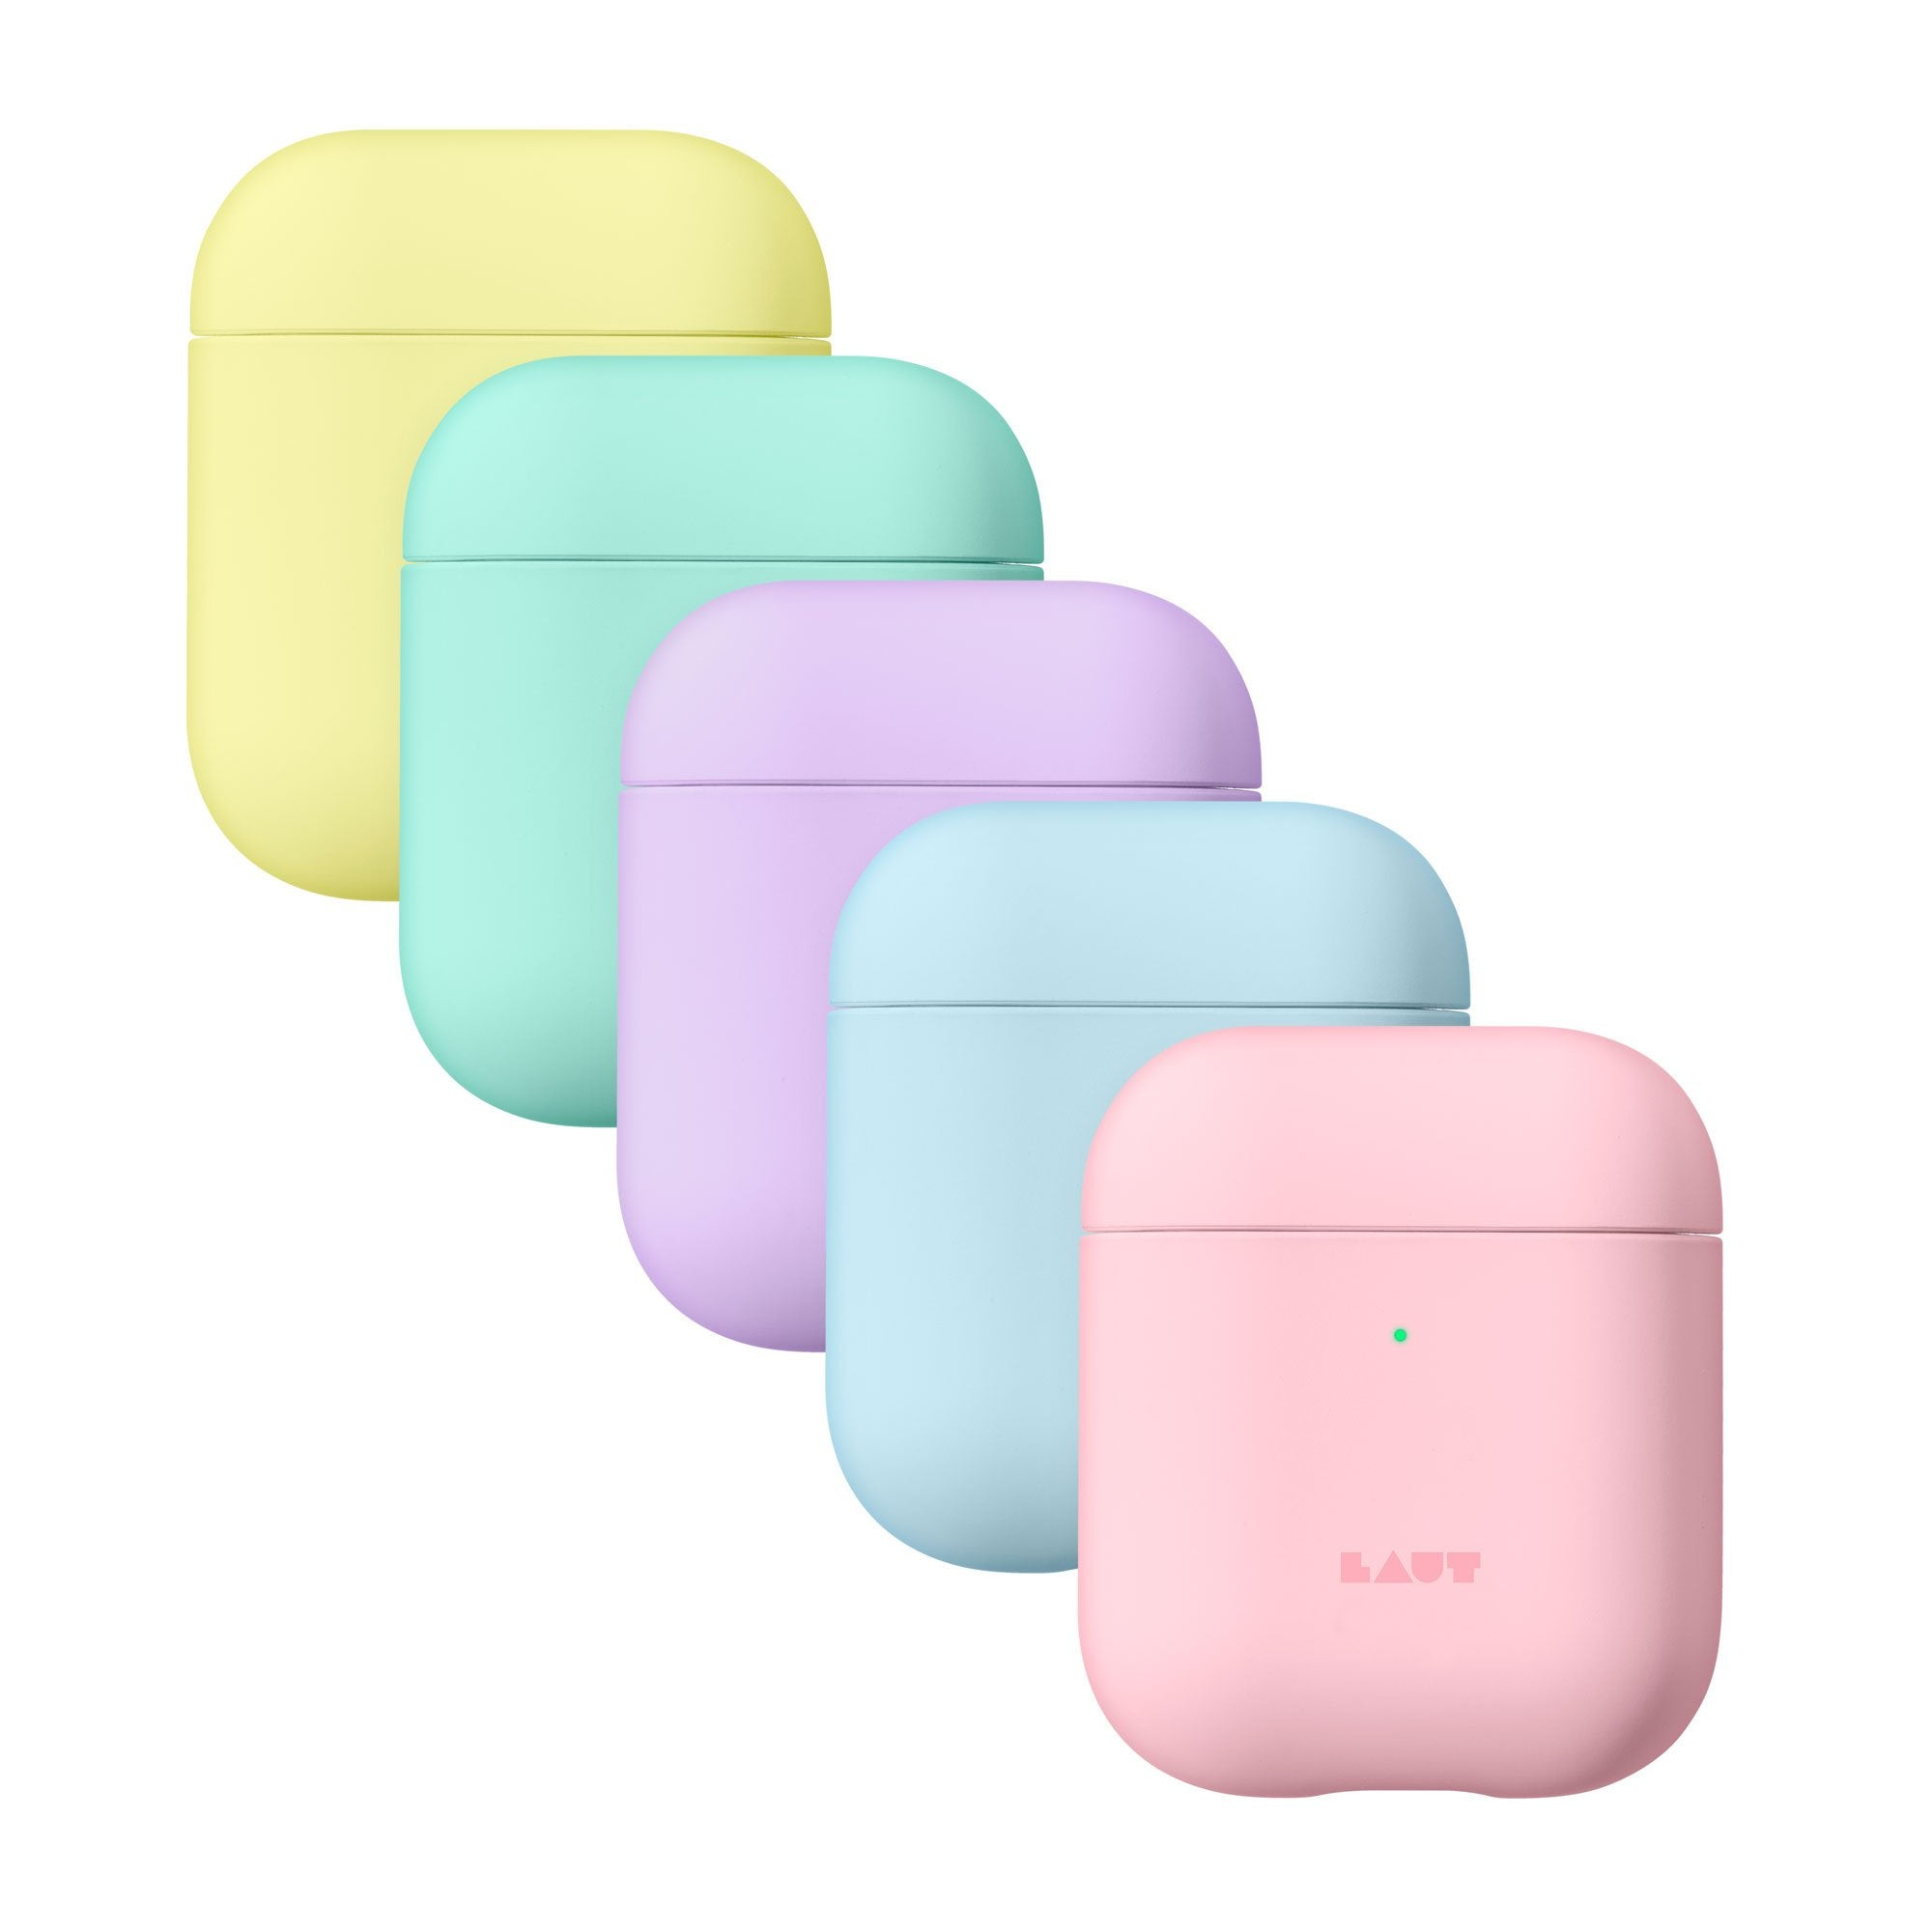 HUEX PASTELS for AirPods - LAUT Japan